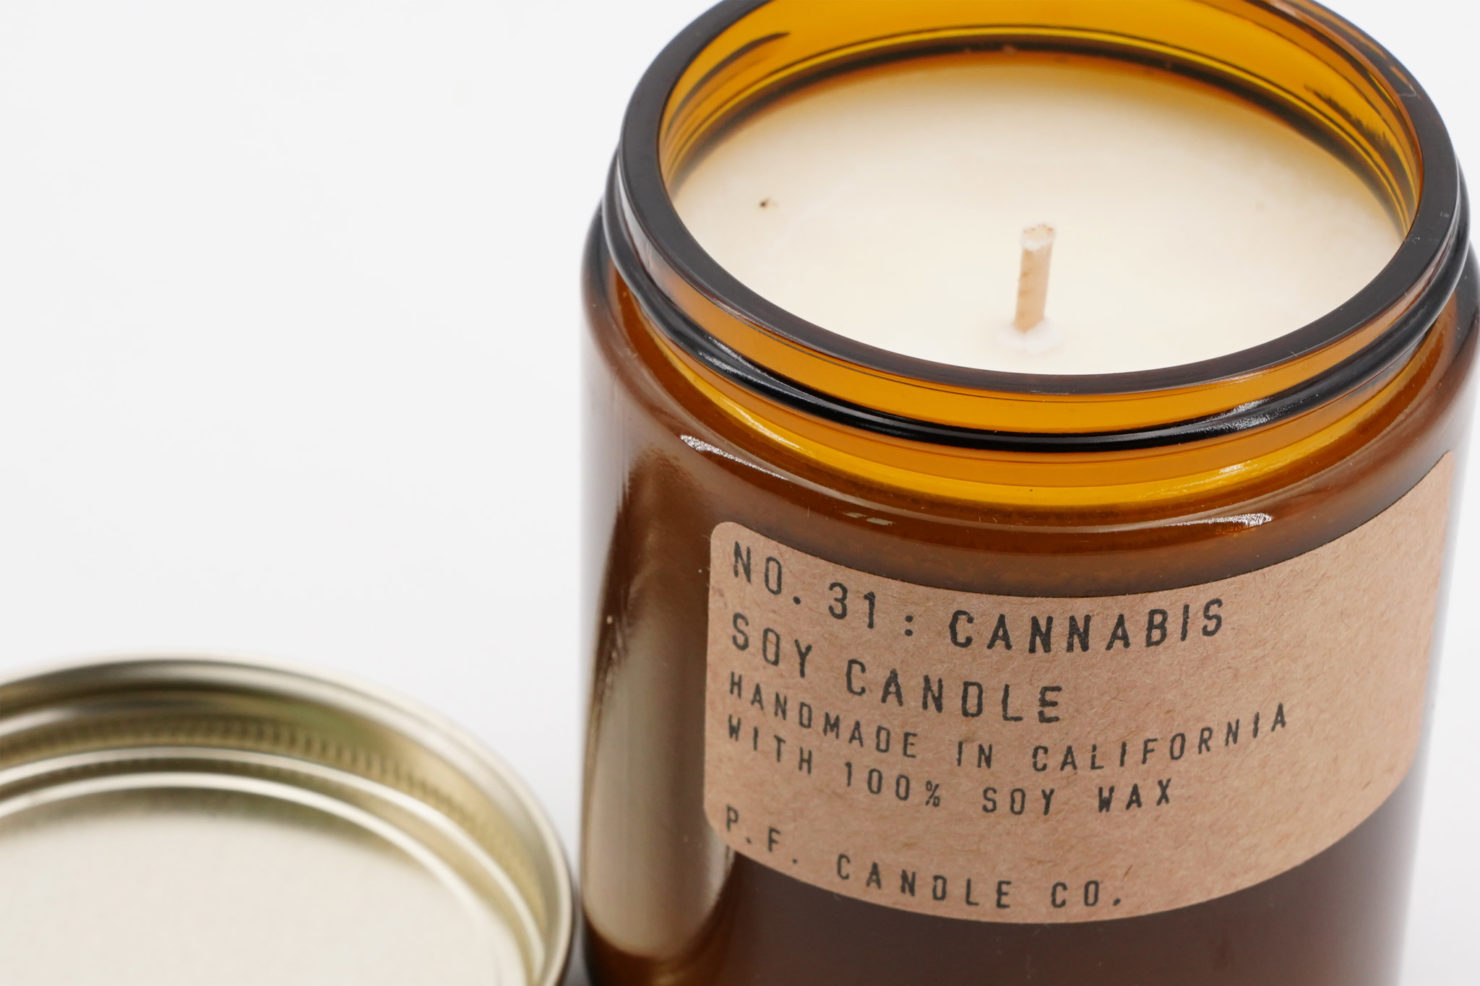 SC-CANNABIS - P.F CANDLE CO.